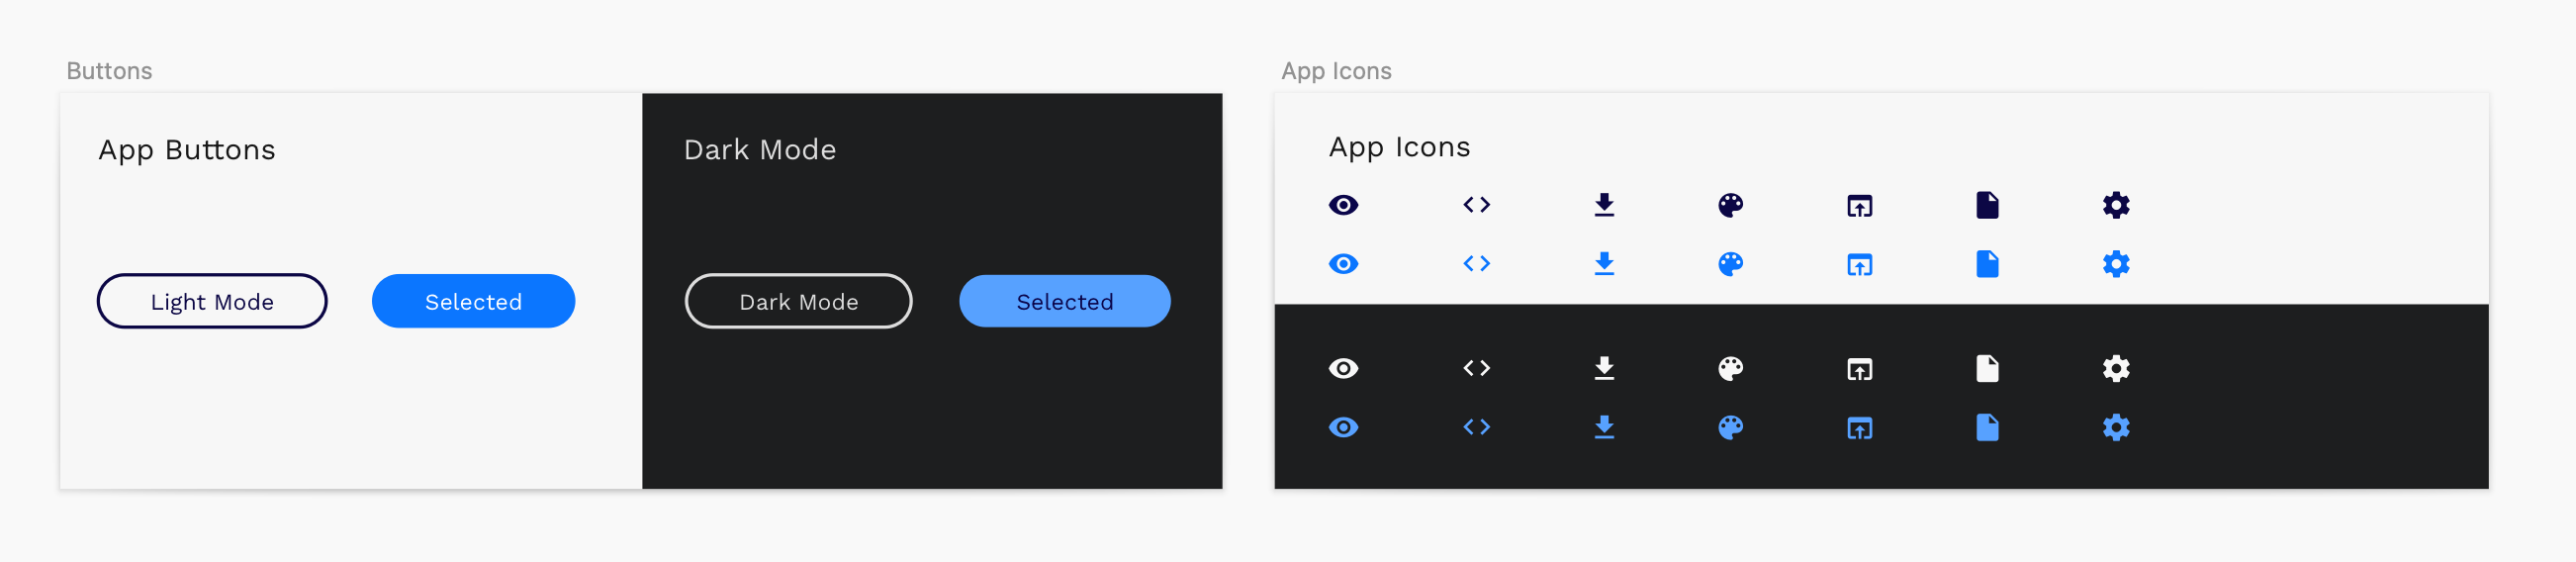 Let's create two new design tokens, two shades of blue